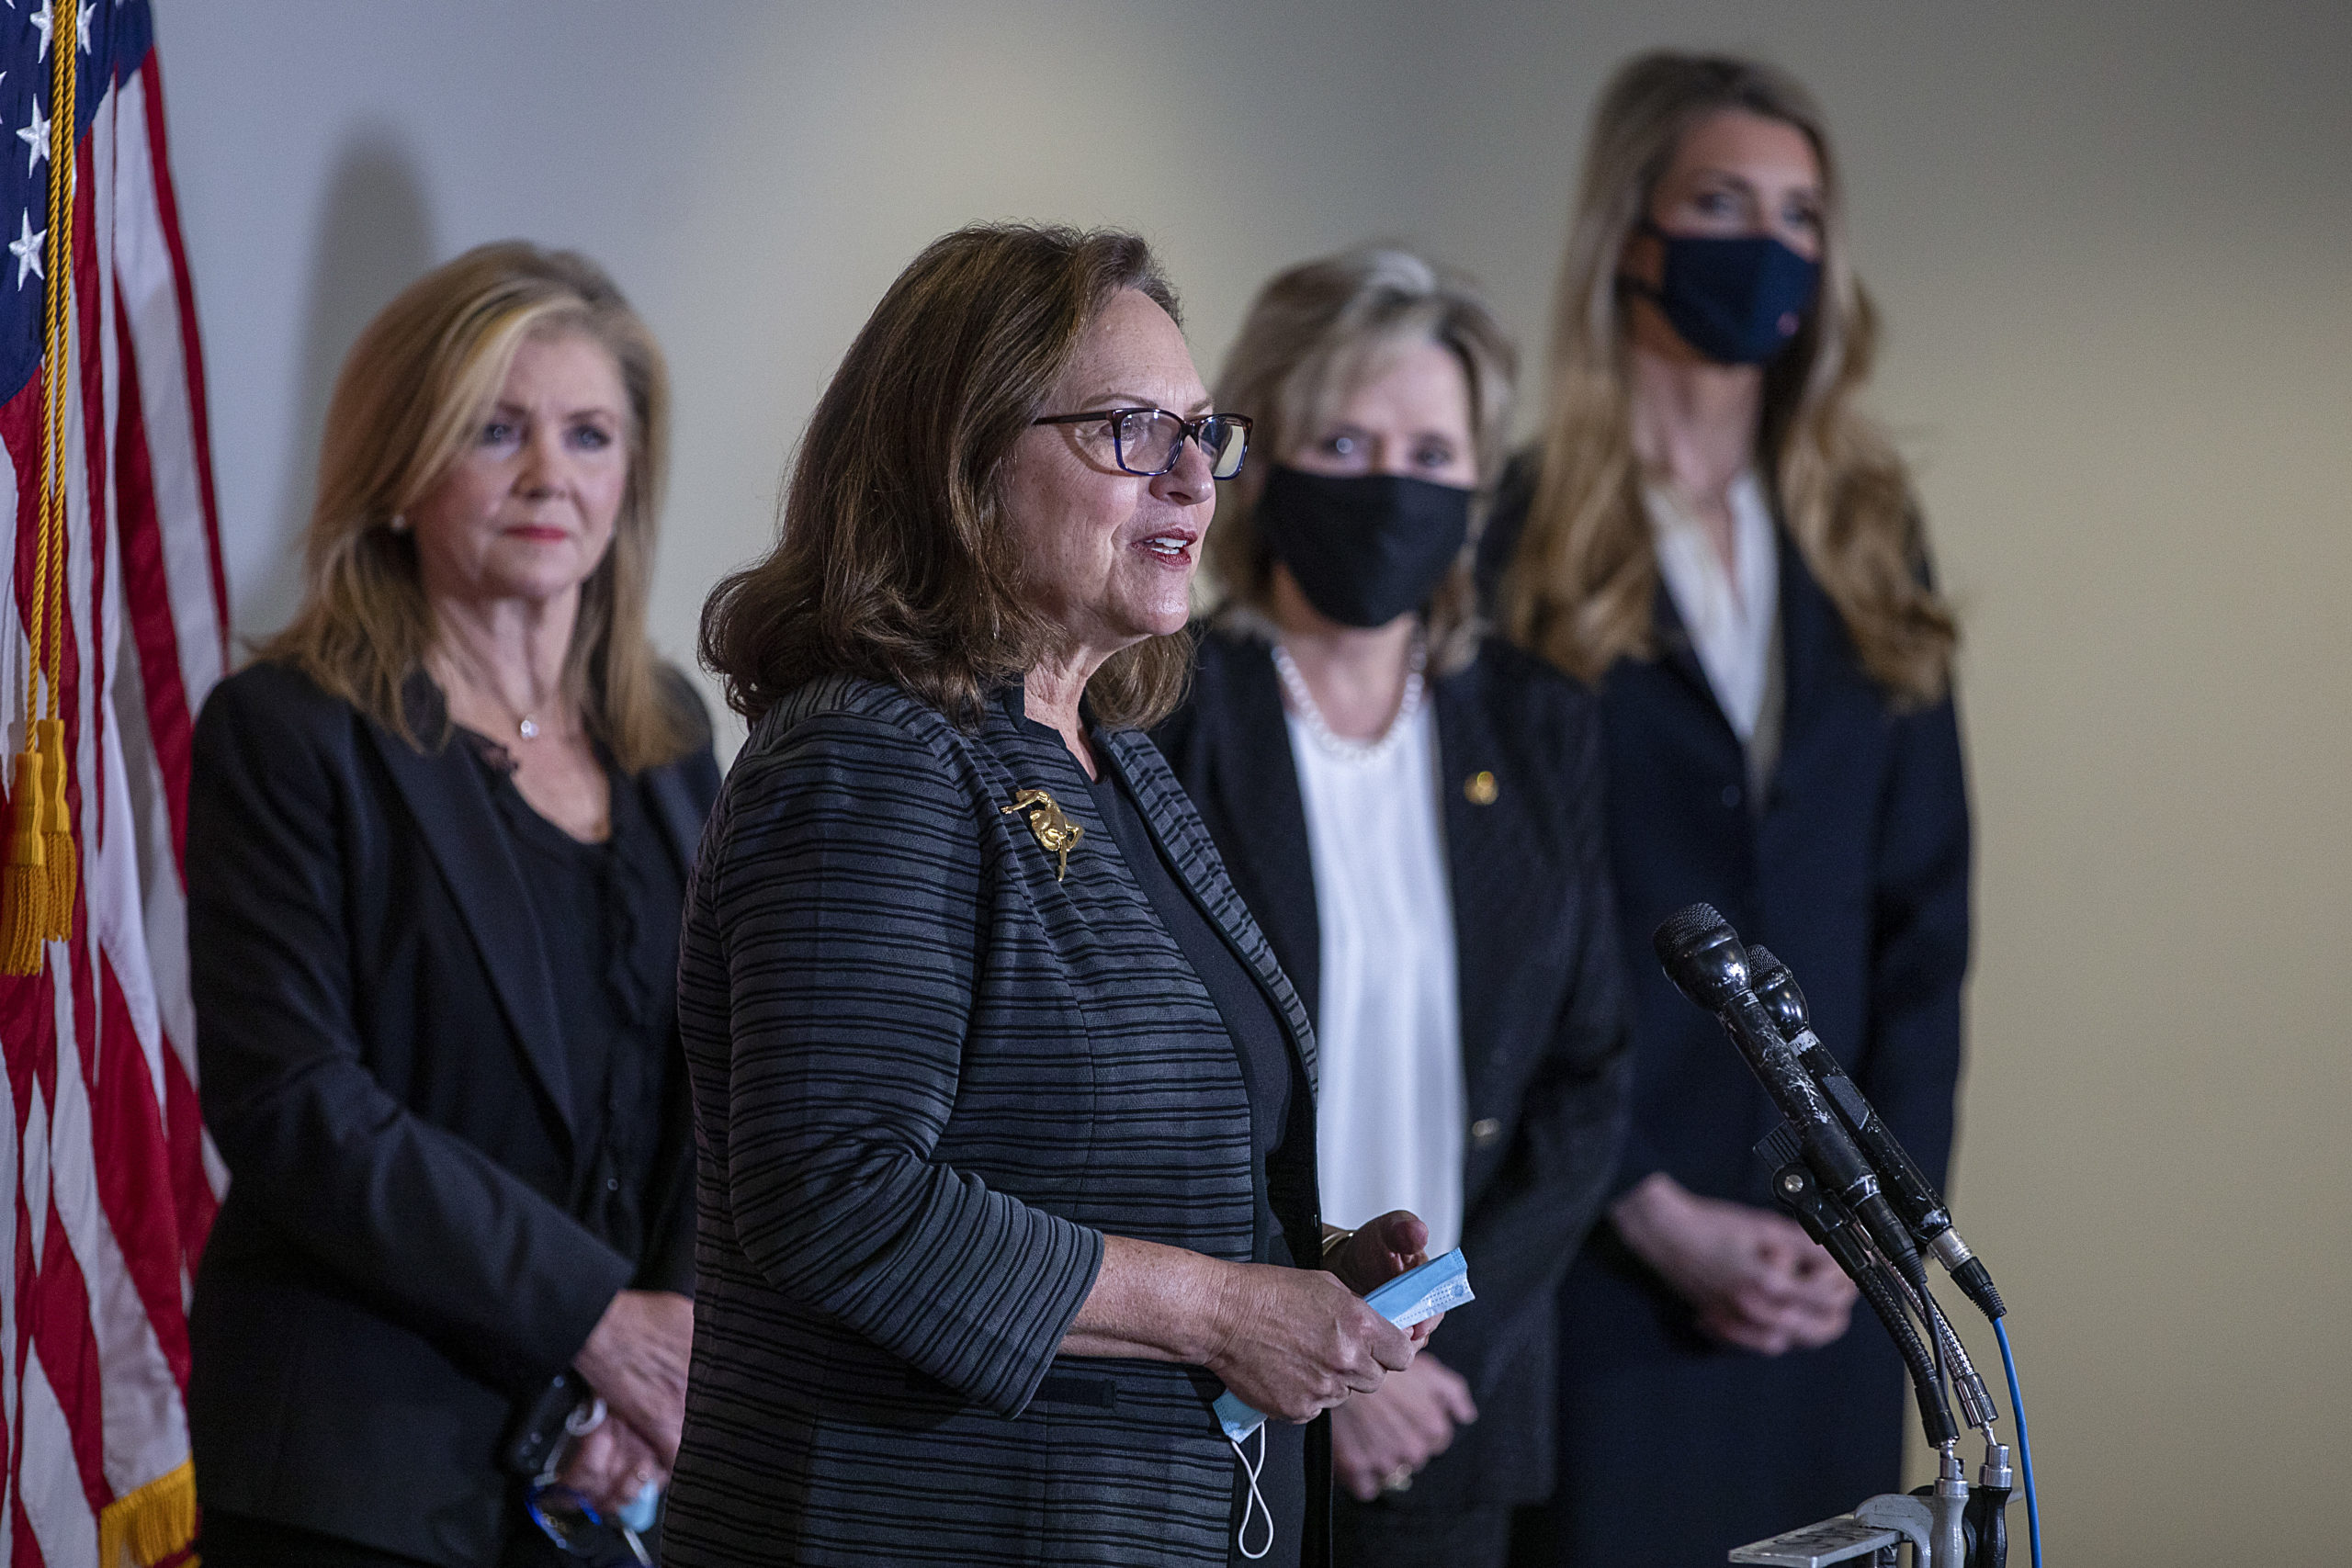 Sen. Deb Fischer (R-NE) speaks at a news conference to discuss Supreme Court nominee Judge Amy Coney Barrett on September 30, 2020 in Washington, DC. (Tasos Katopodis/Getty Images)